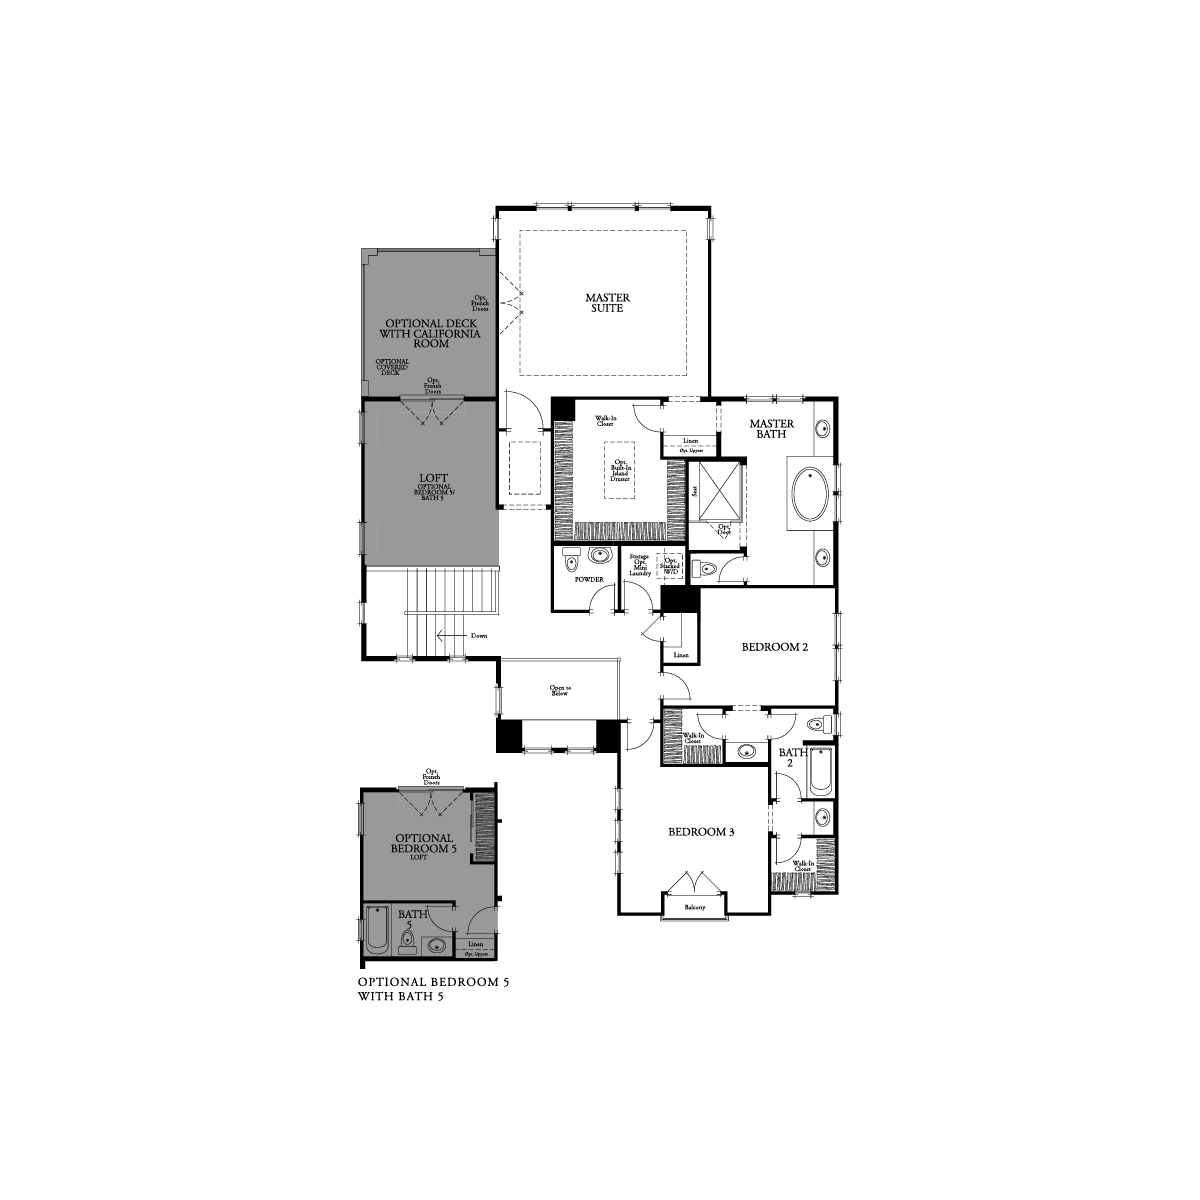 Second floor residence 6 floor plan | Crown Point at Stonebrae in Hayward, CA | Brookfield Residential